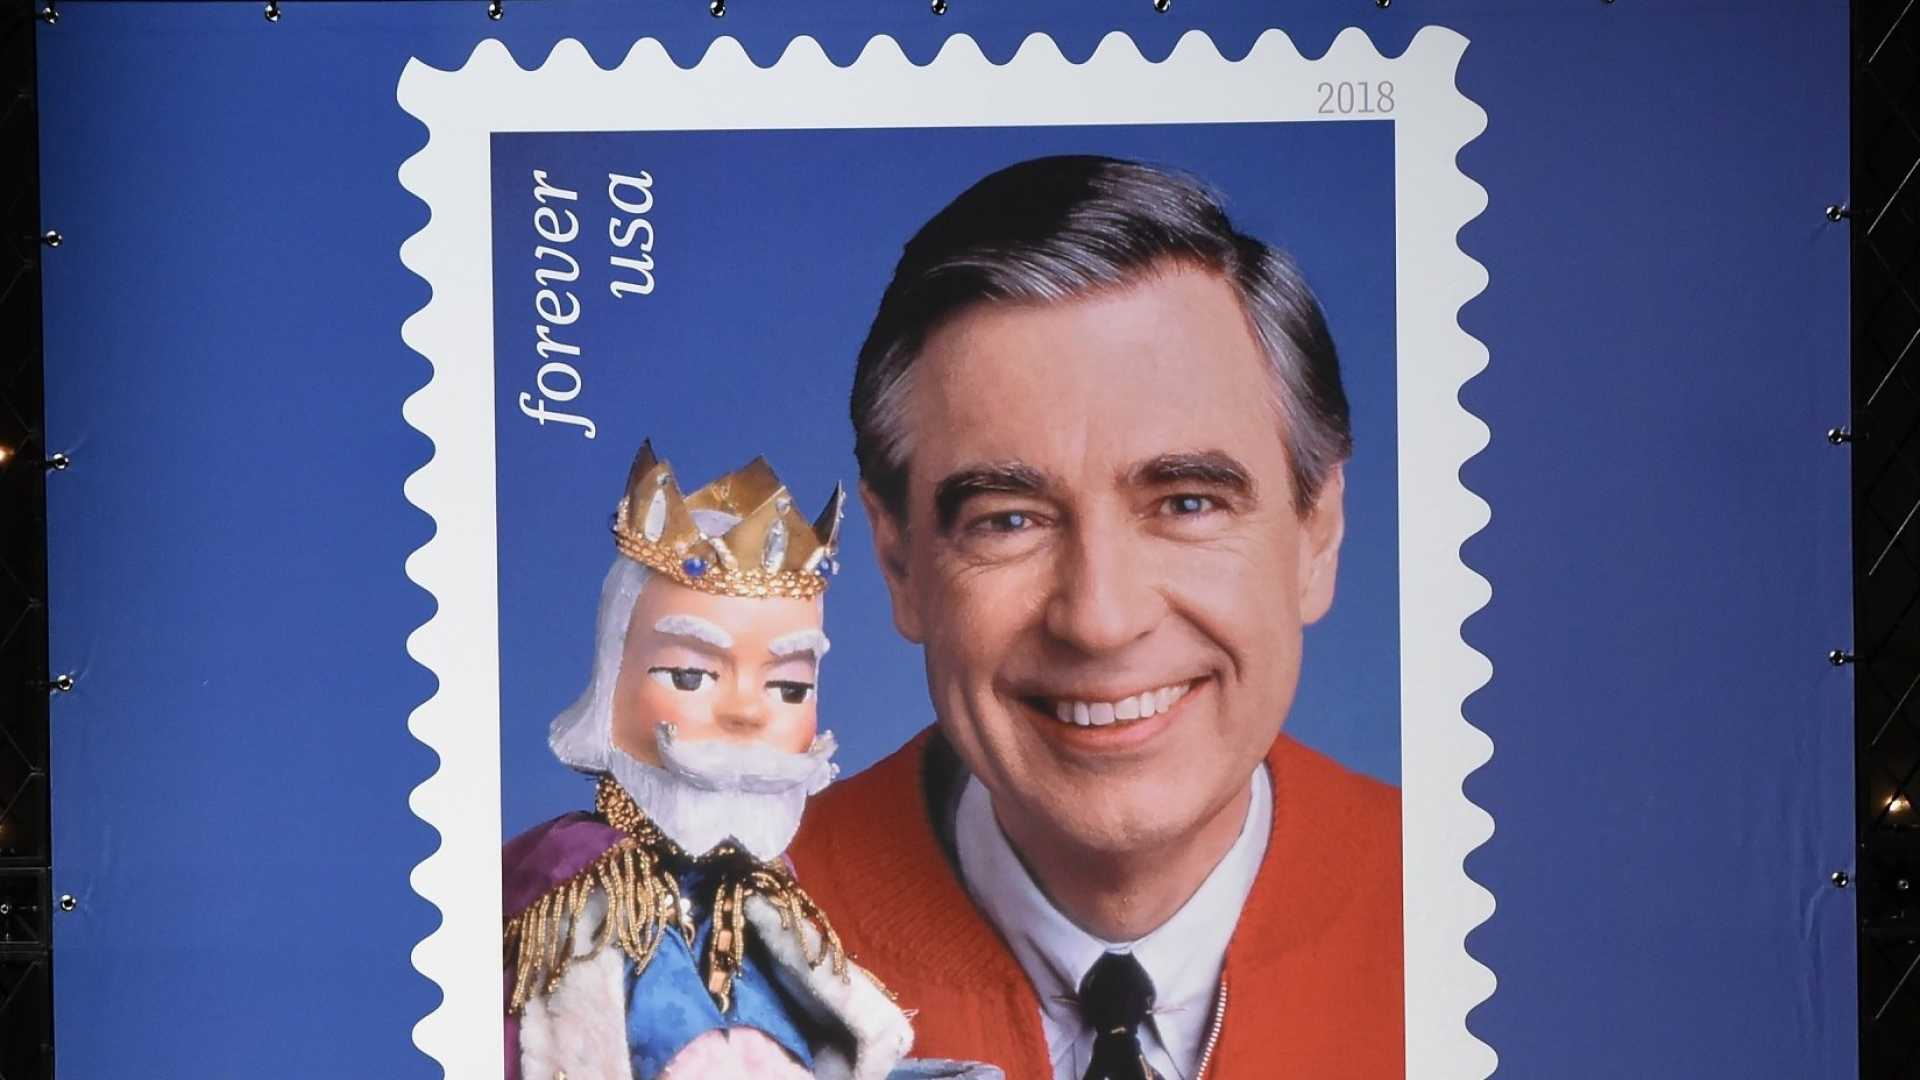 The Leadership Tao of Mister Rogers: 5 Emotionally Intelligent Ways to Stay Calm When Under Pressure